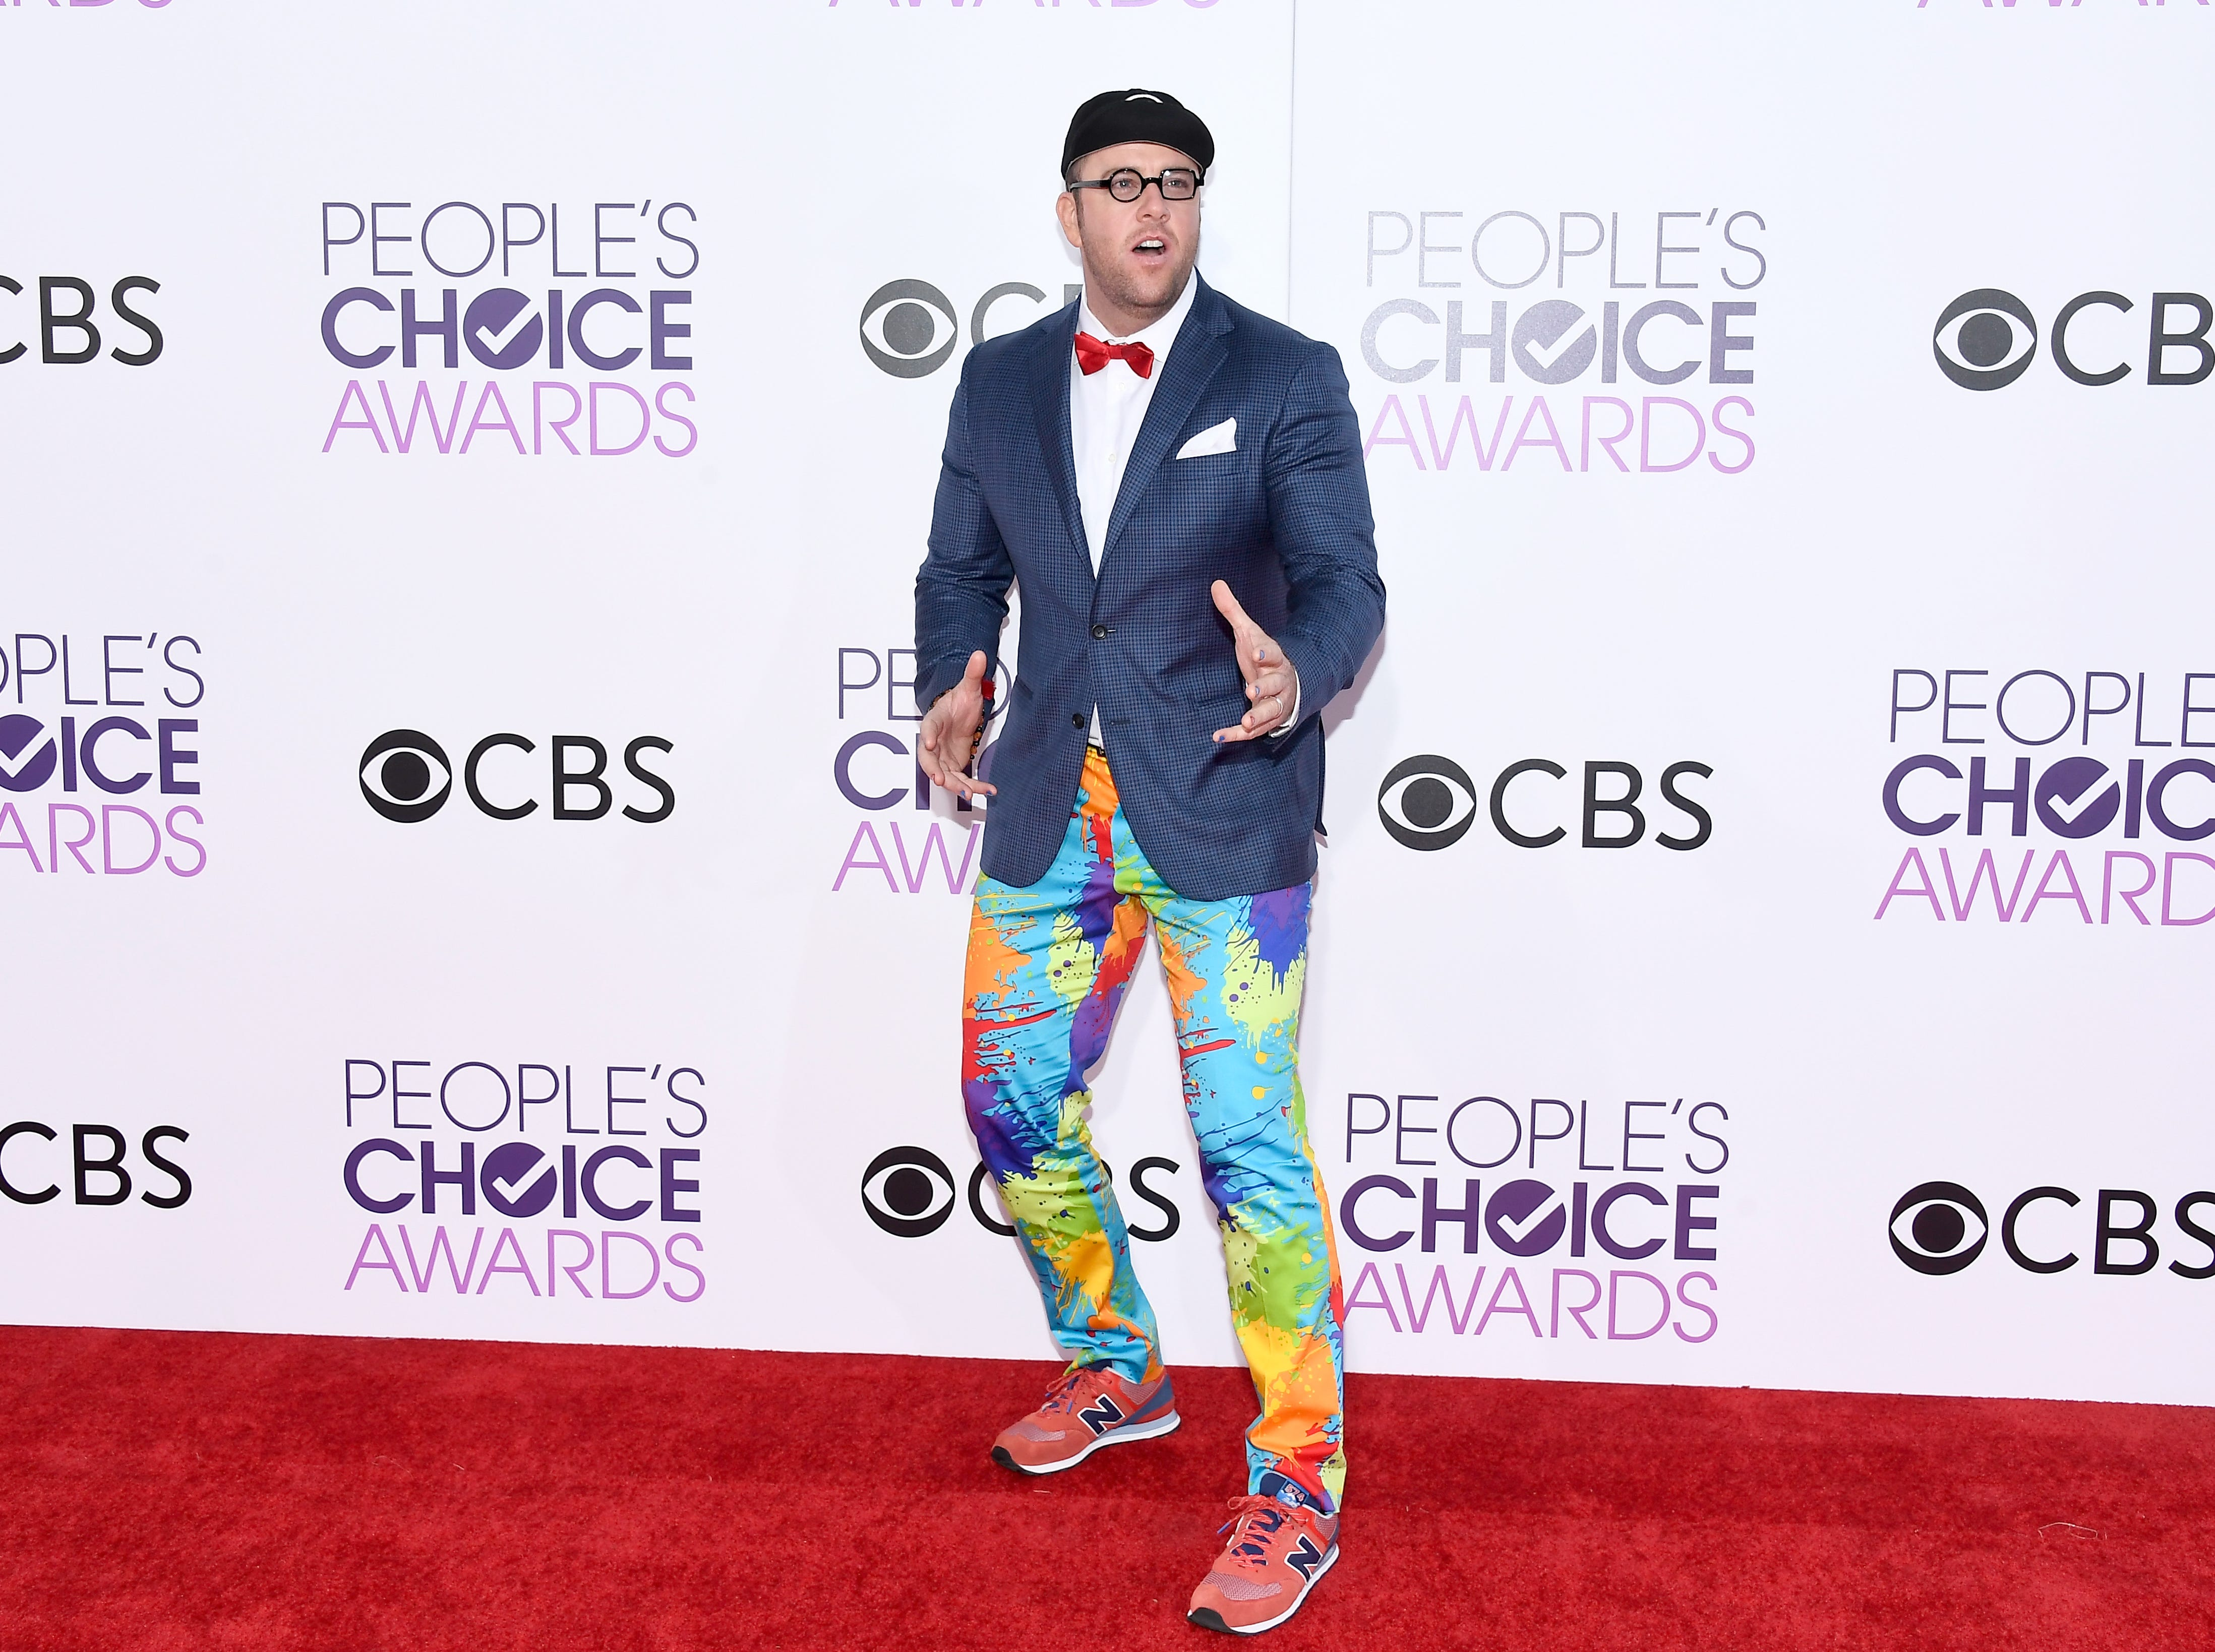 LOS ANGELES, CA - JANUARY 18:  Actor Chris Sullivan attends the People's Choice Awards 2017 at Microsoft Theater on January 18, 2017 in Los Angeles, California.  (Photo by Kevork Djansezian/Getty Images) ORG XMIT: 692971301 ORIG FILE ID: 632009964